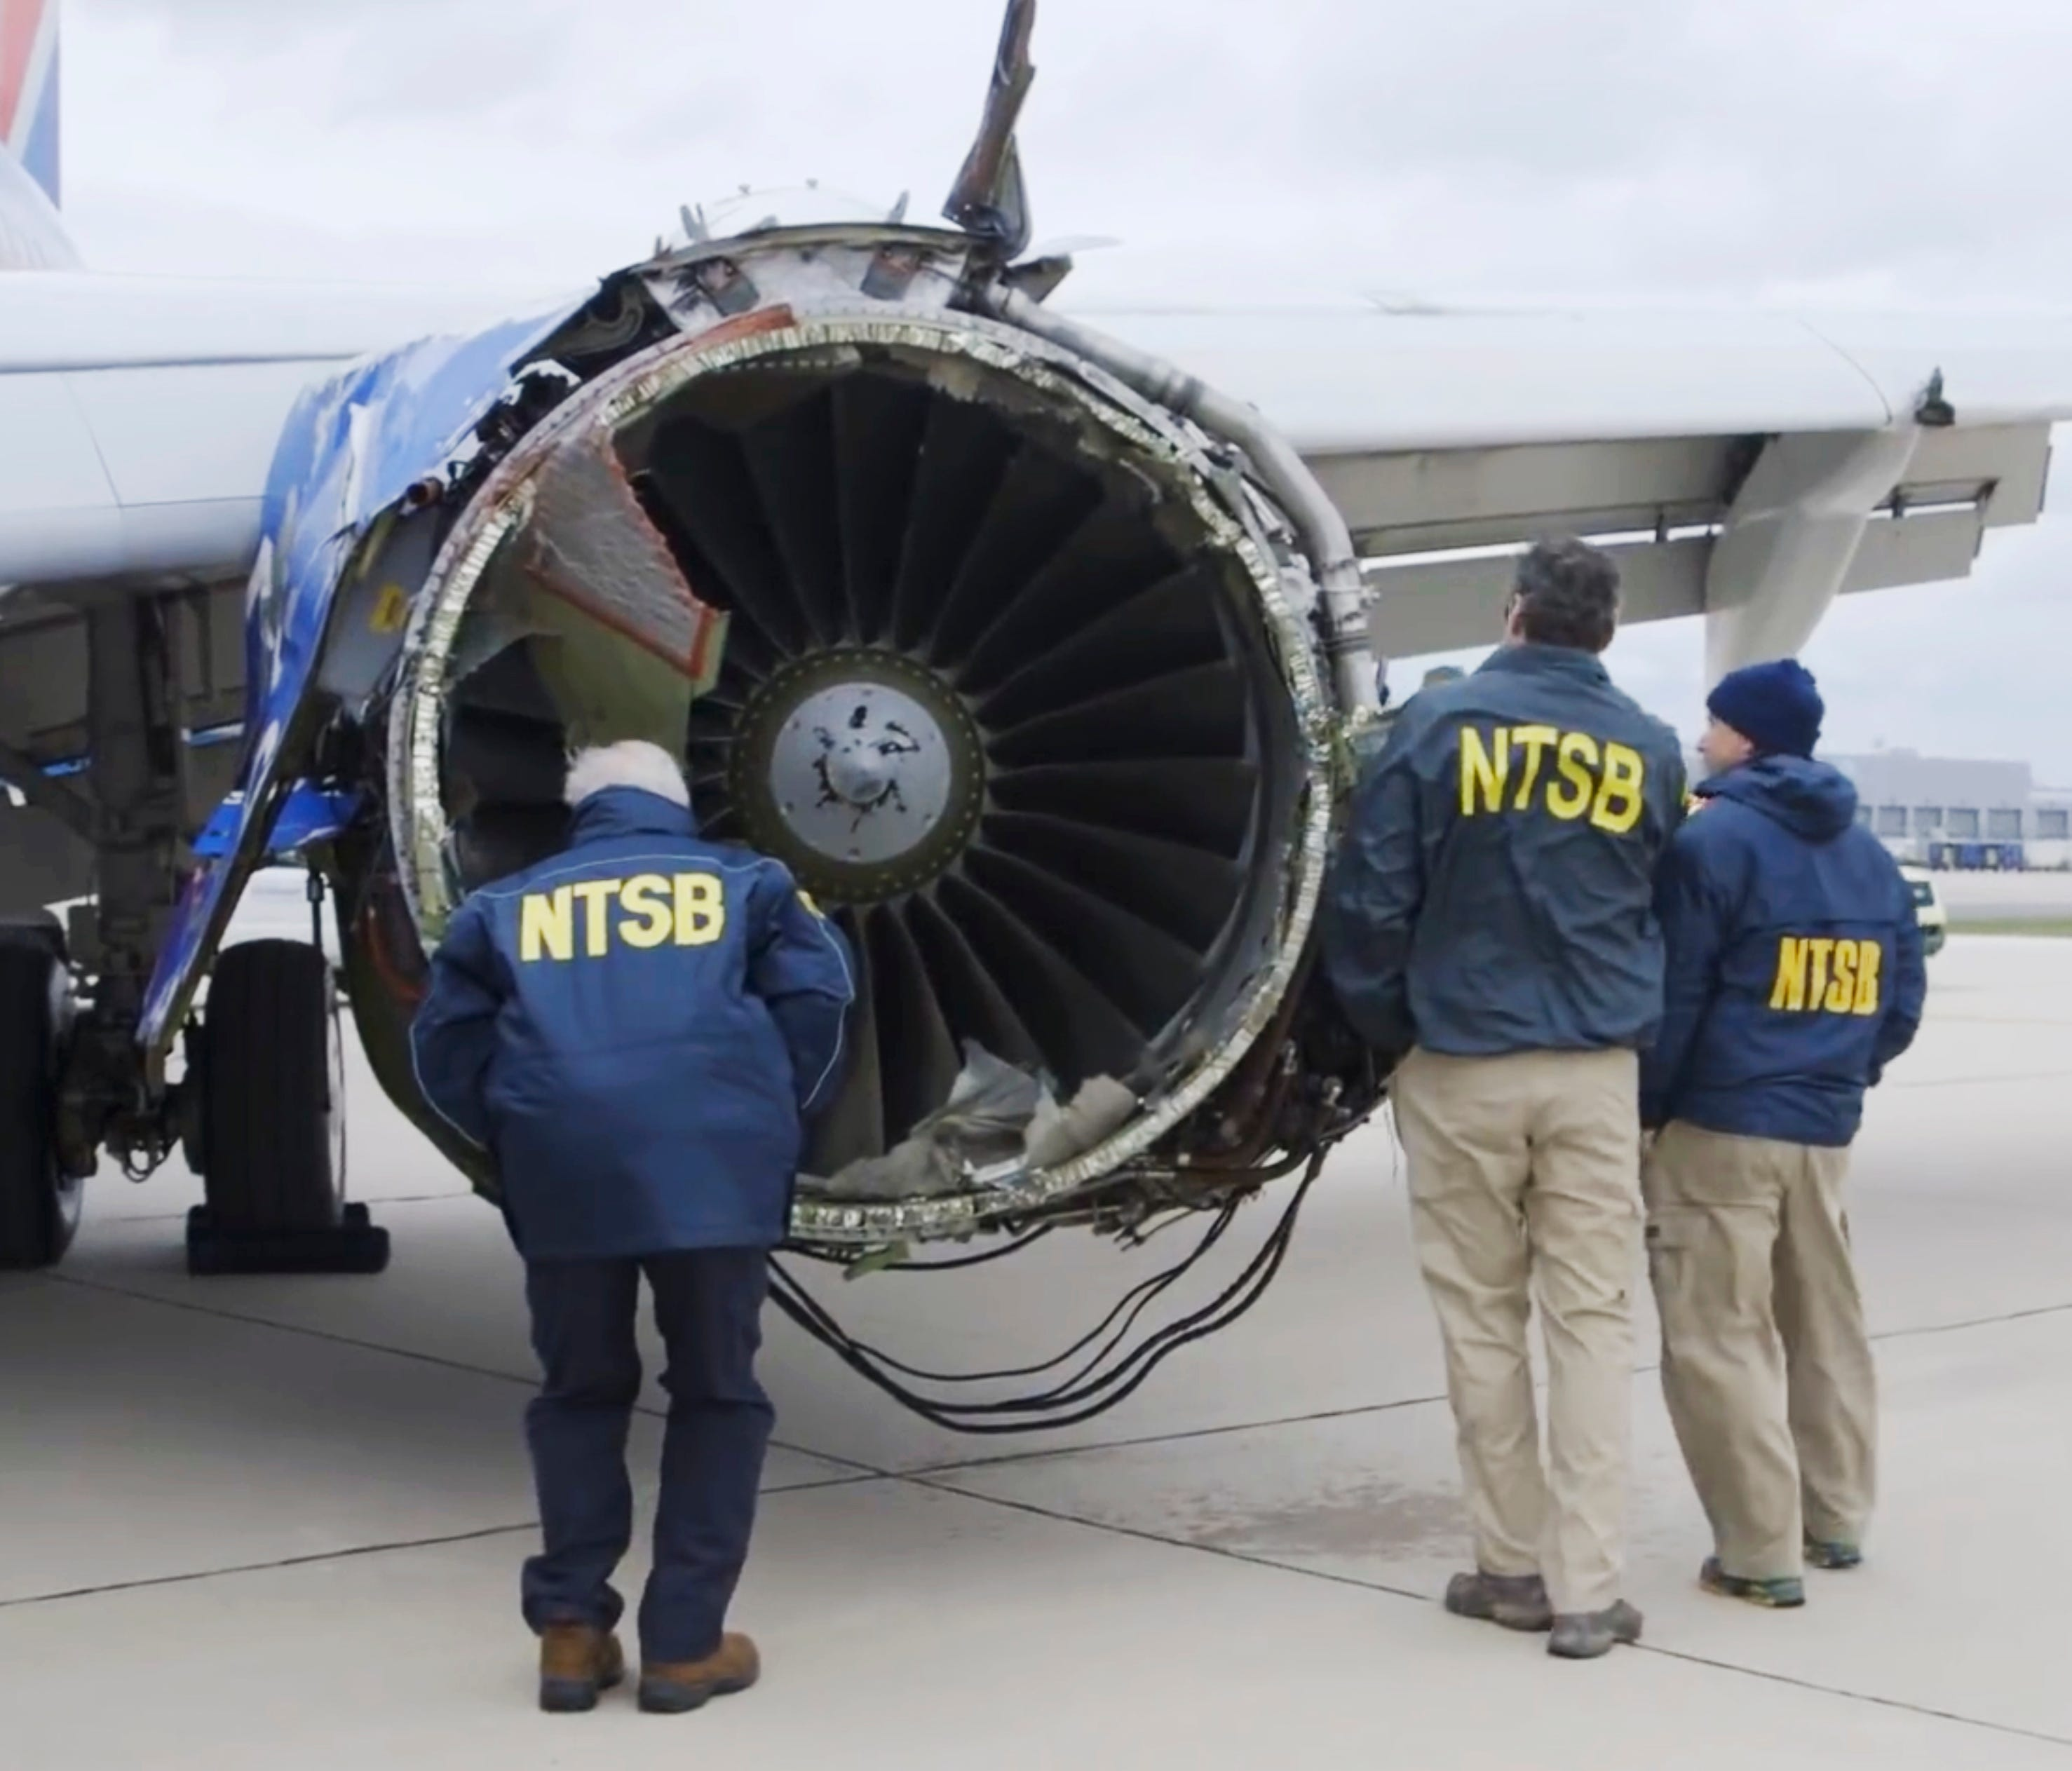 A National Transportation Safety Board investigator examines damage to the engine of the Southwest Airlines plane that made an emergency landing at Philadelphia International Airport in Philadelphia on April 17, 2018.